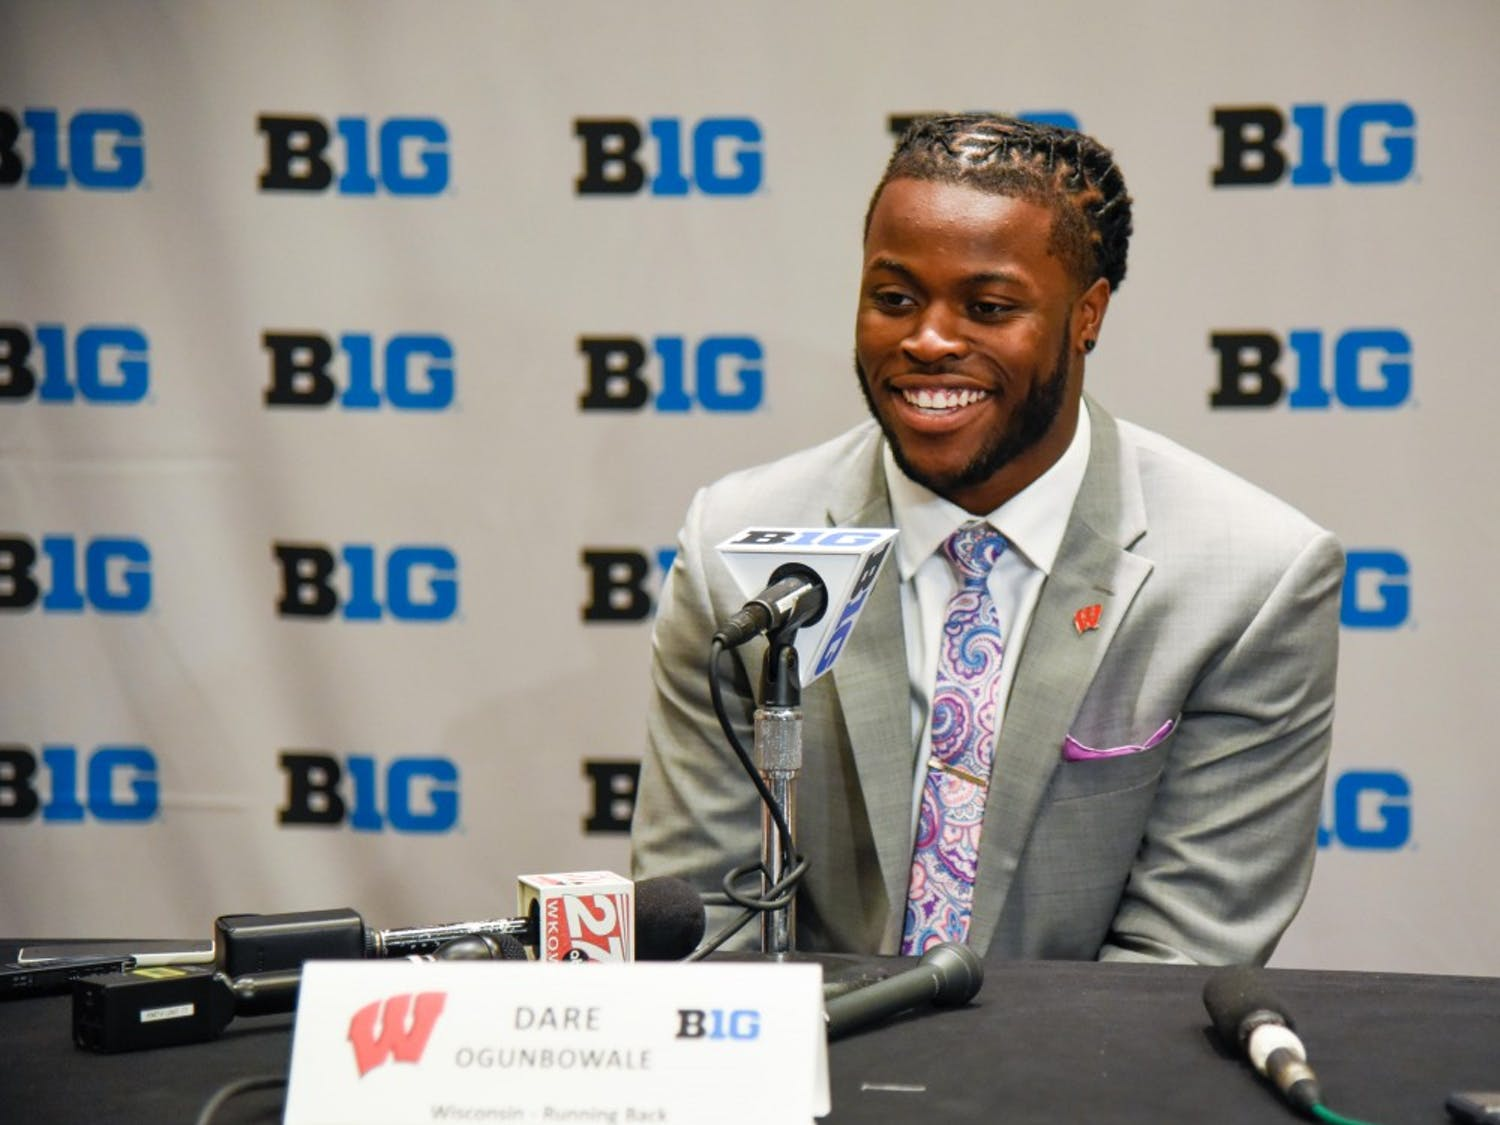 Photographer Jessi Schoville captured some of the Big Ten's finest addressing the press at Big Ten Media Days in Chicago. Football season is just over a month away and between Michigan, Michigan State, Ohio State, Iowa and Wisconsin, this campaign could be one of the Big Ten's best.